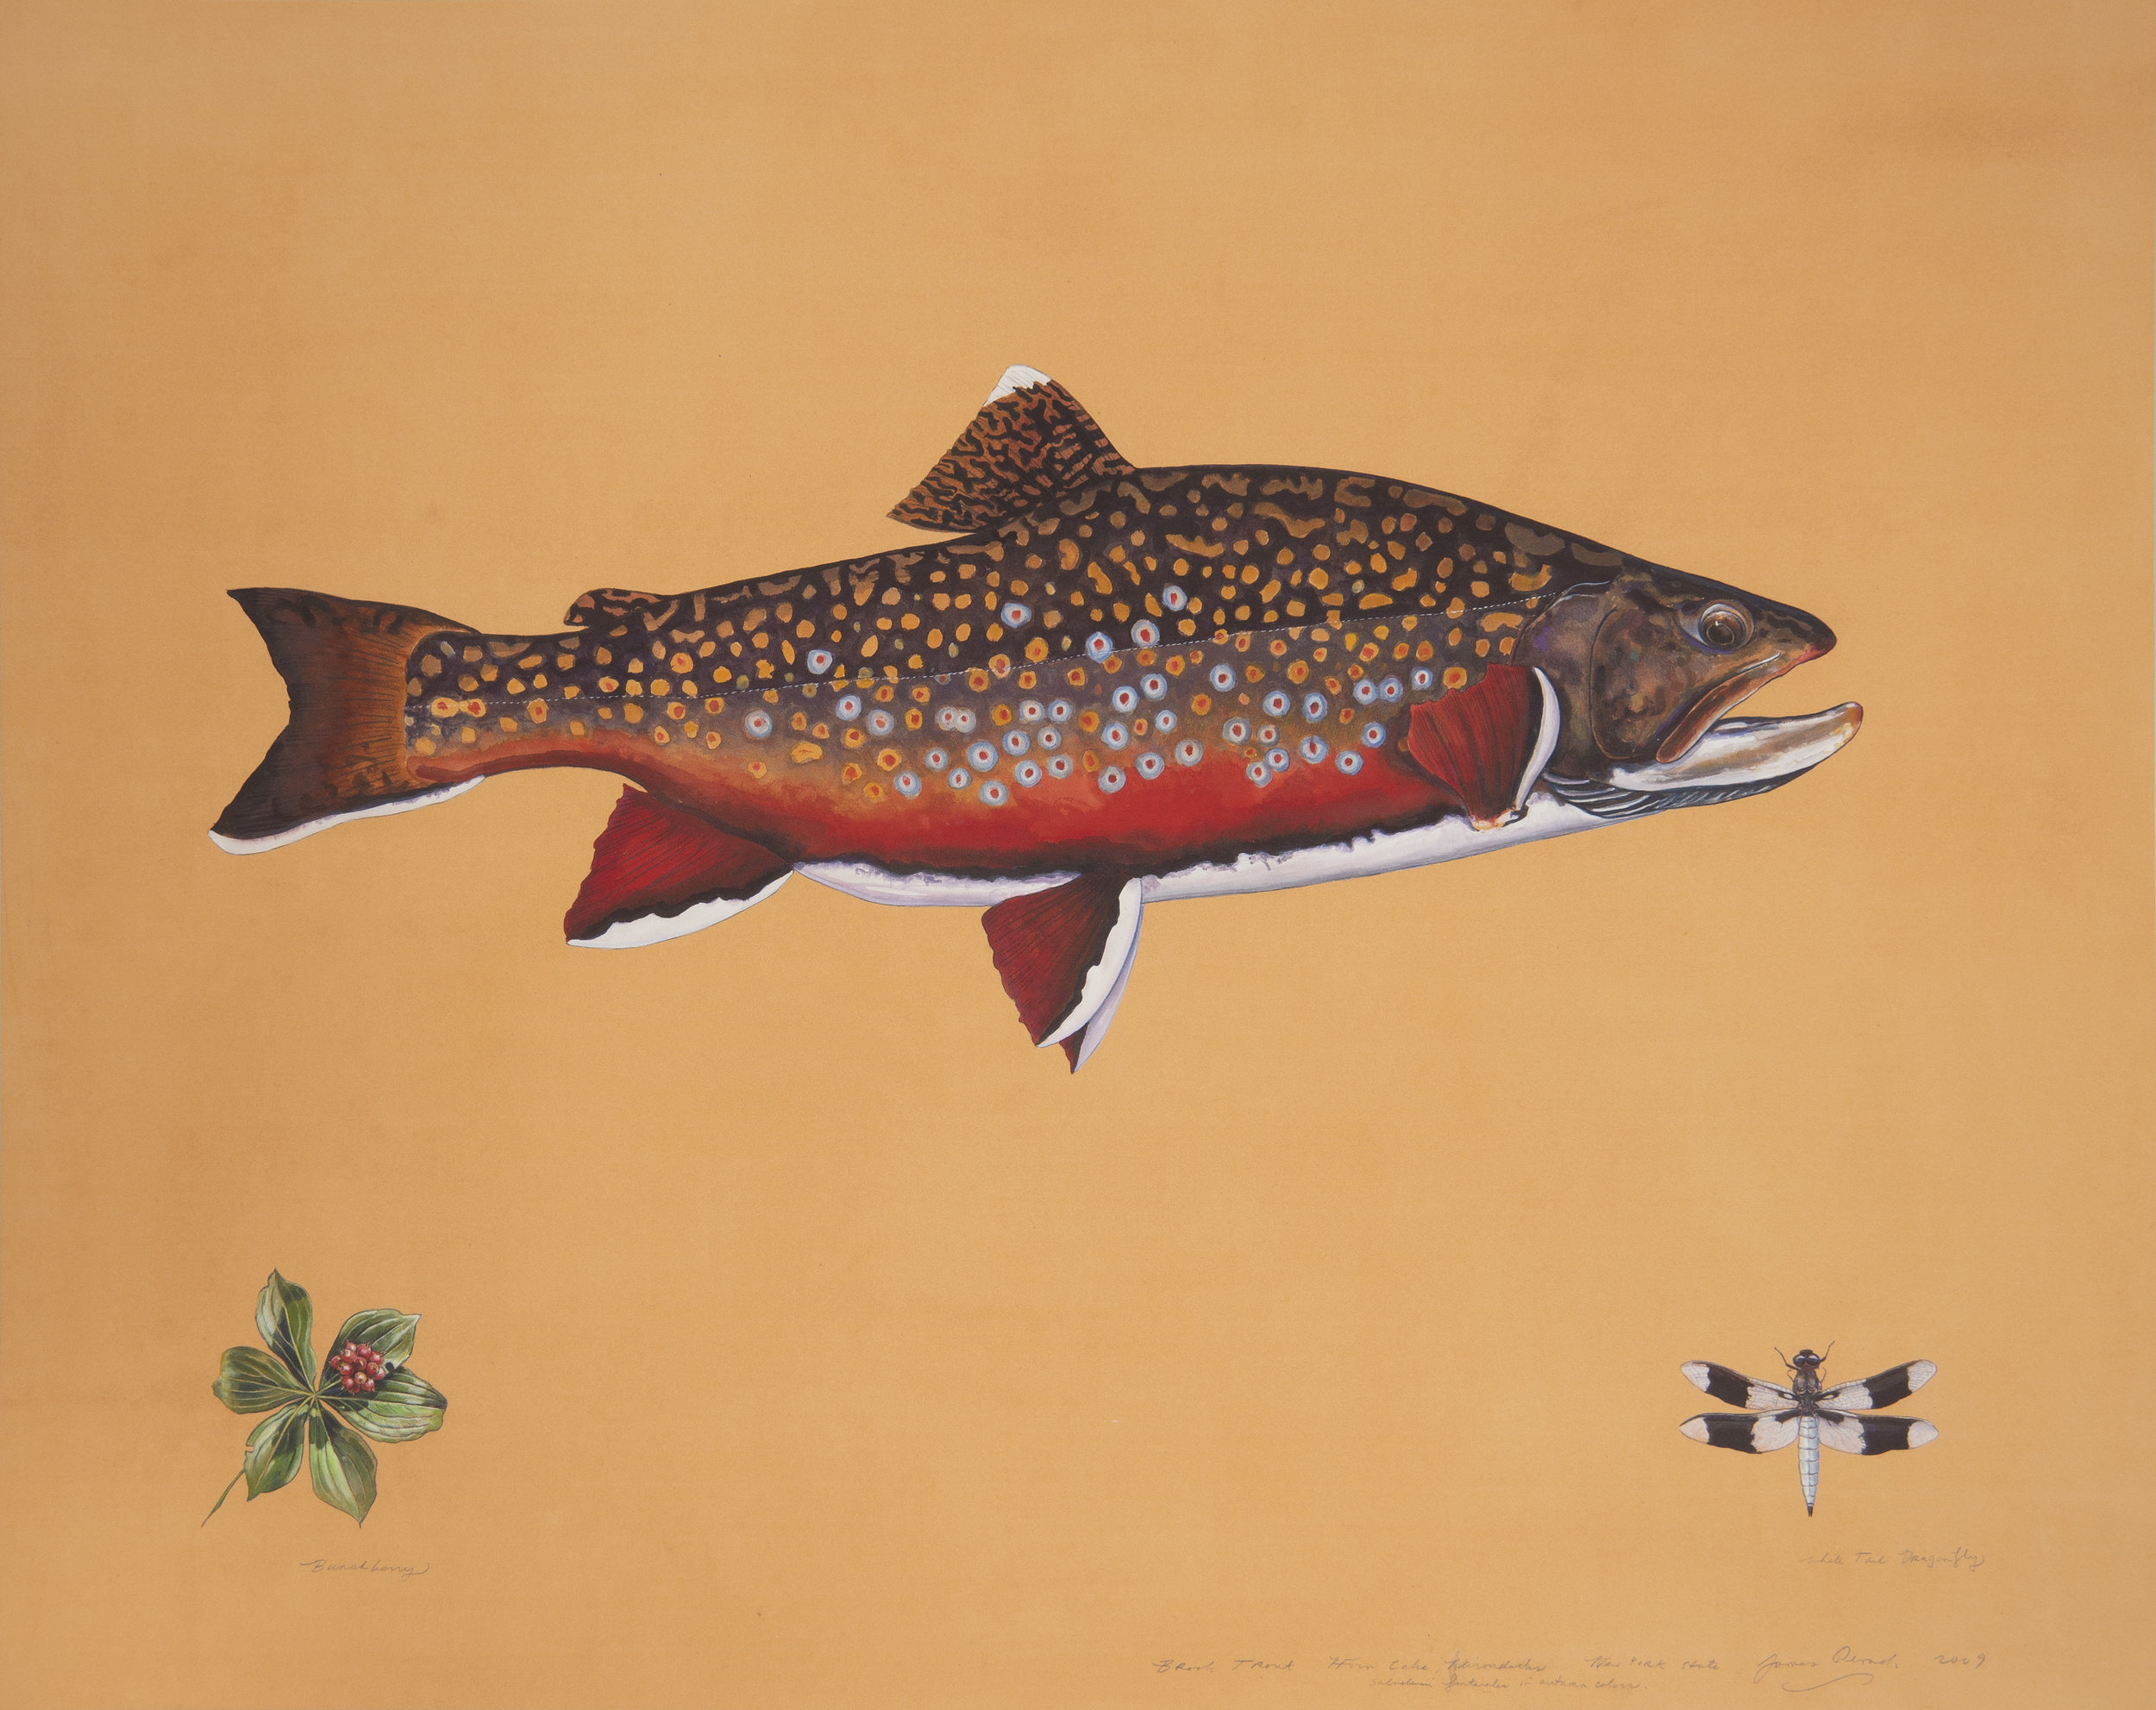 James Prosek - Trout Swim Drink Fish Gala.jpg